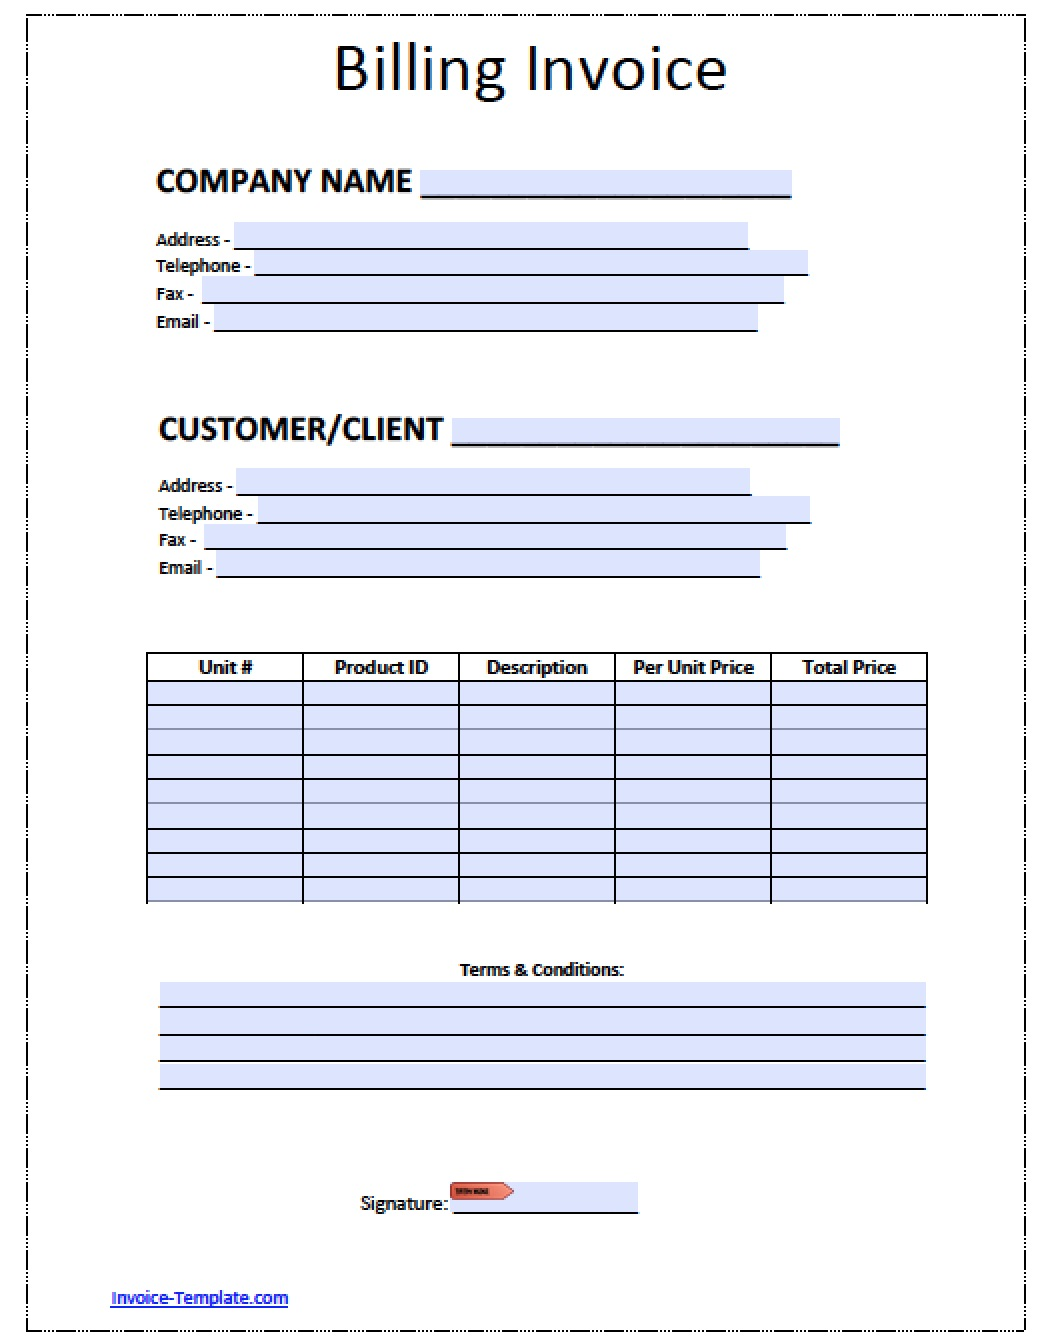 Free Blank Invoice Templates In PDF Word Excel - Auto parts invoice template